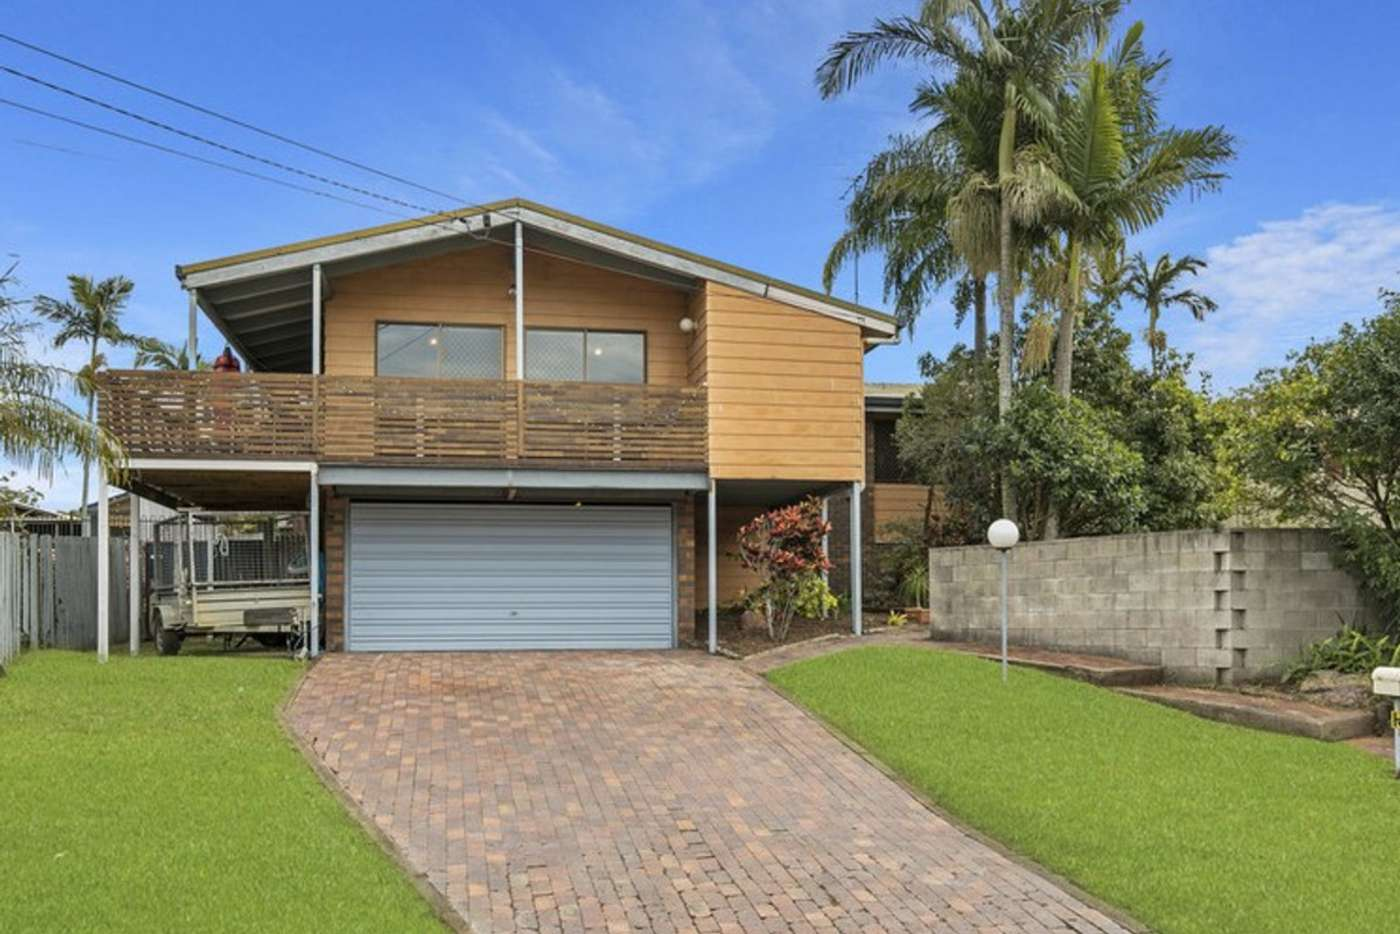 Main view of Homely house listing, 13 Merrick Street, Capalaba QLD 4157